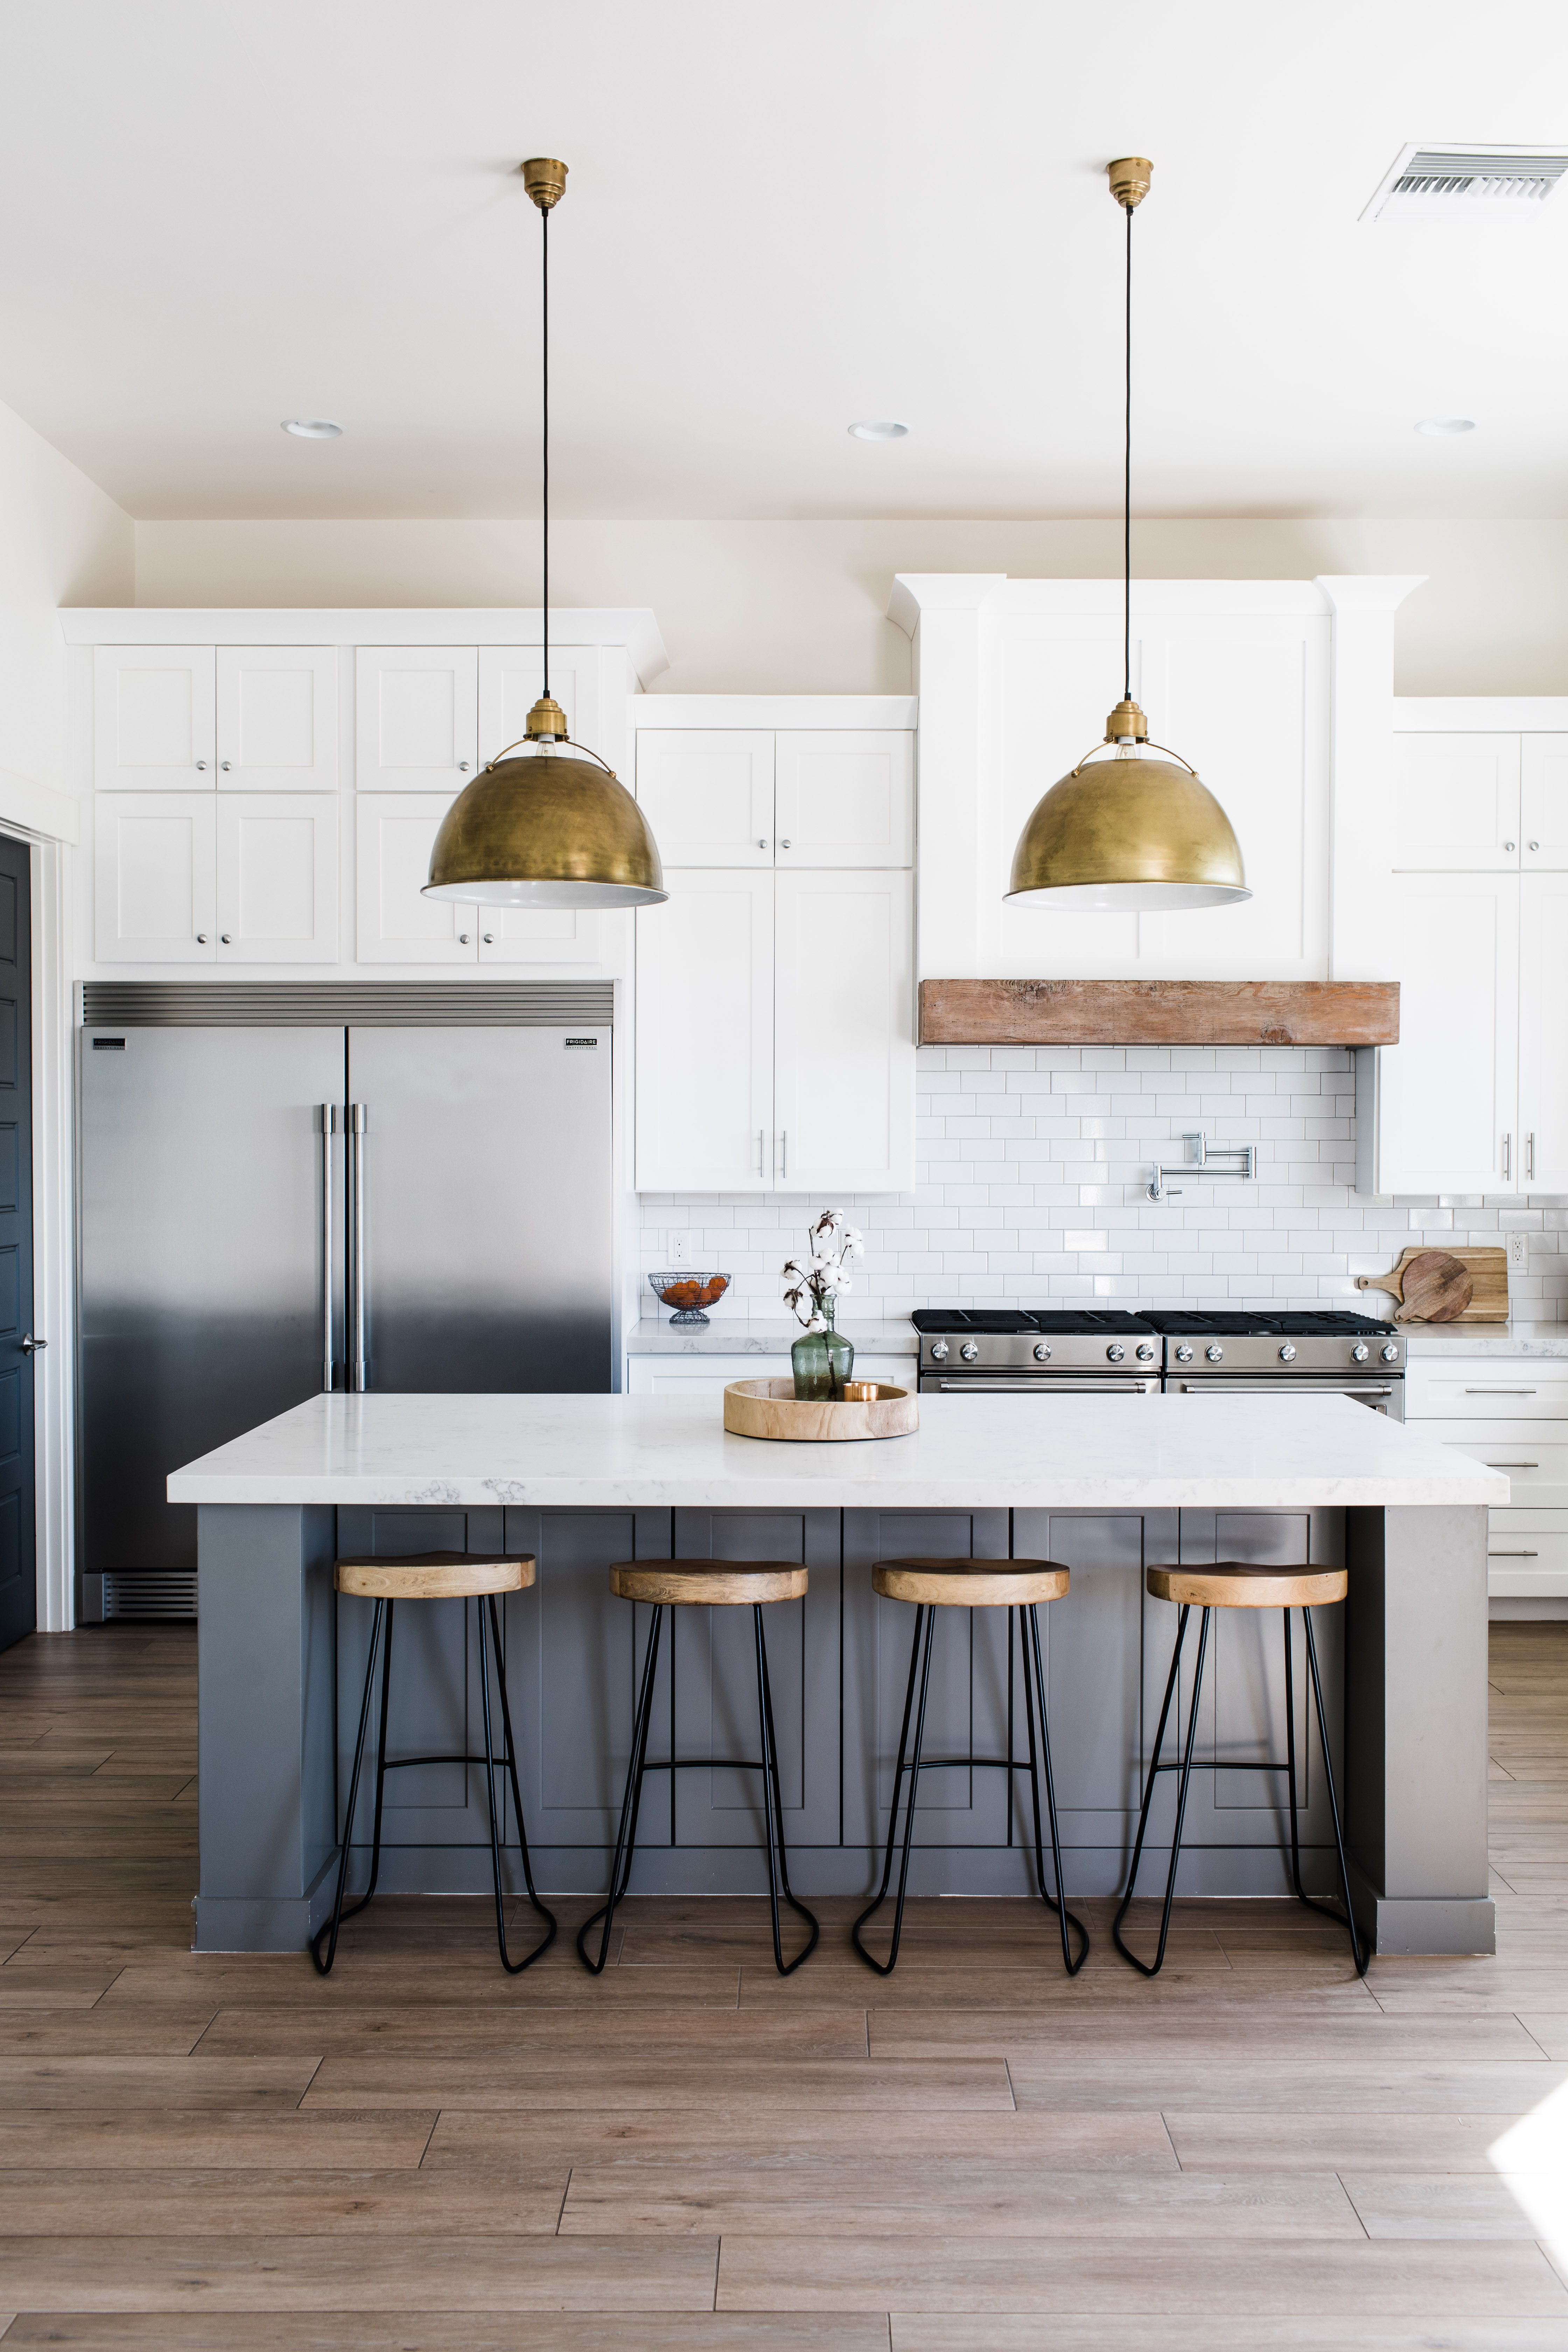 White And Blue Kitchen With Gold Pendant Lights From Phoenix Home Builder White Kitchen Decor Kitchen Style Gold Pendant Lighting